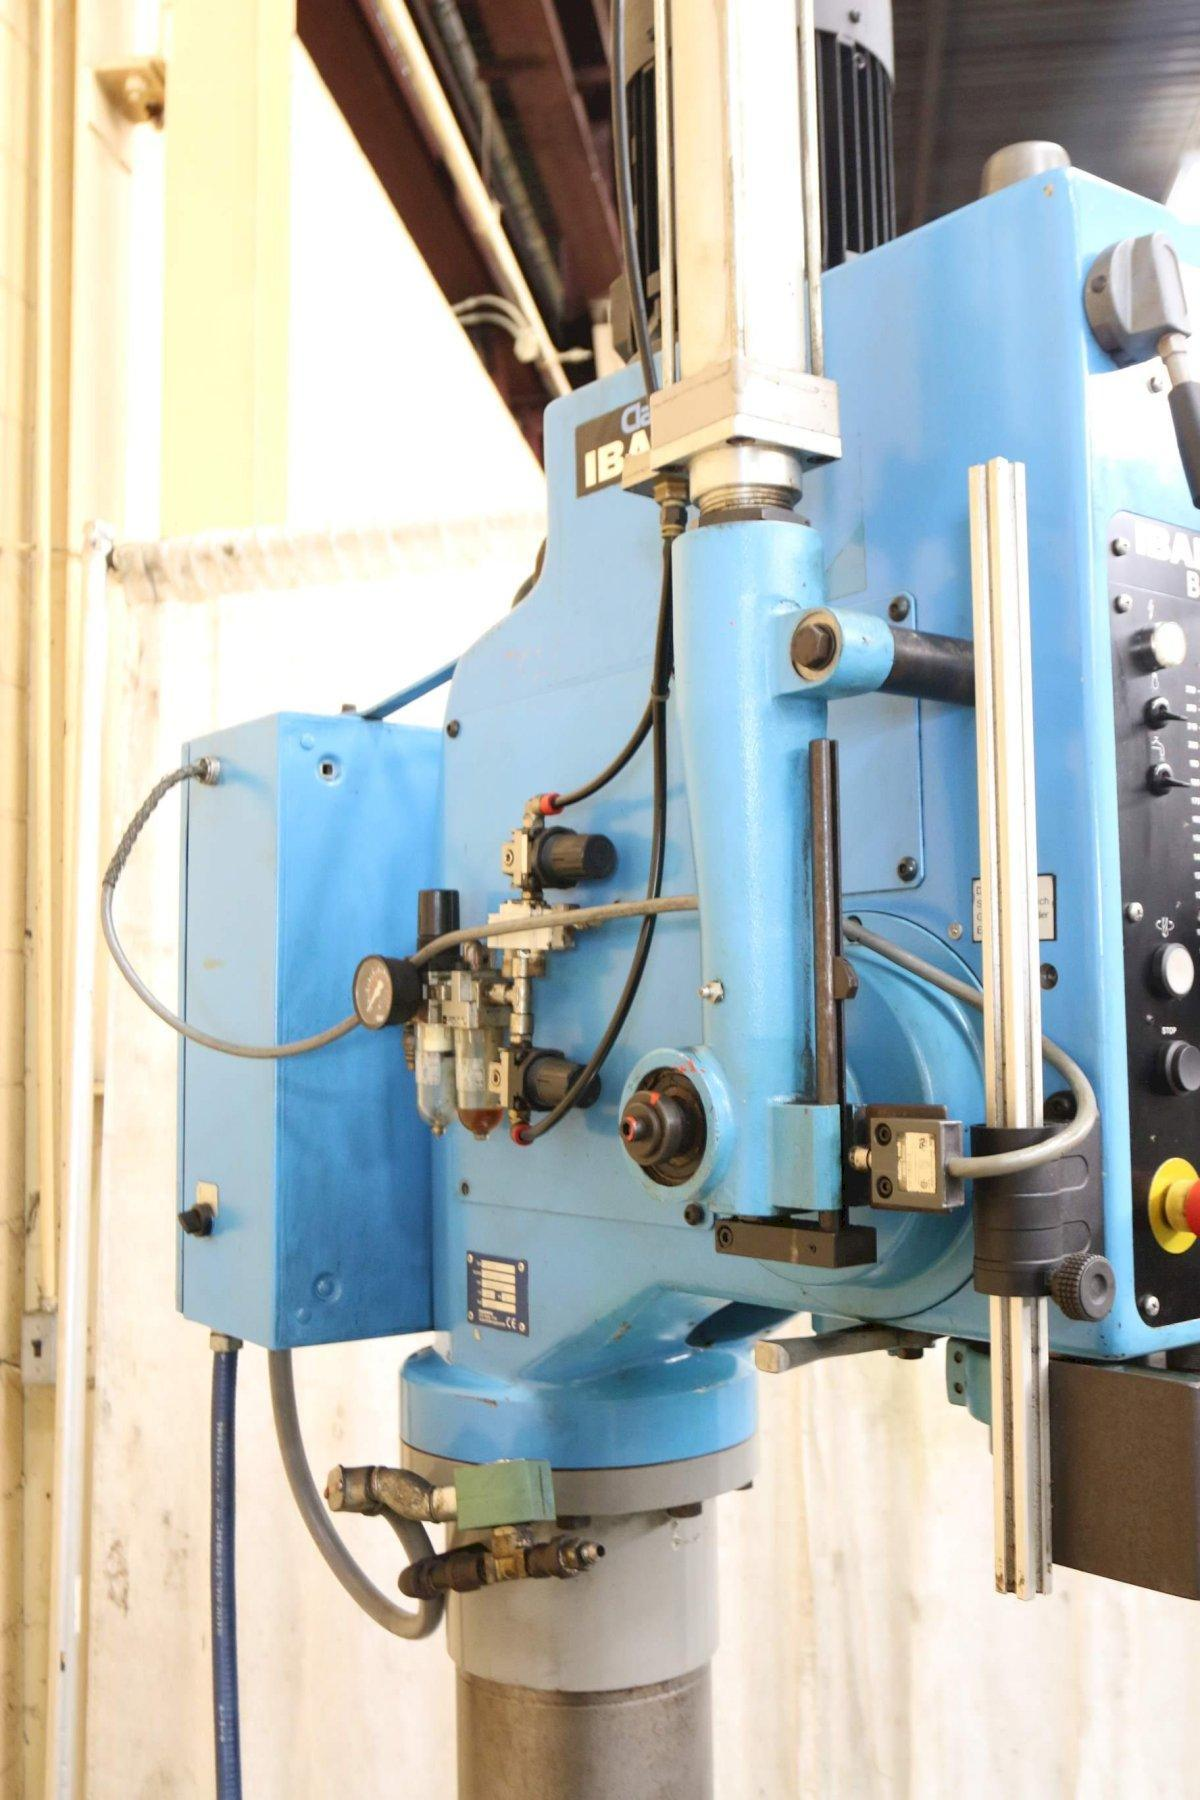 IBARMIA MODEL #B-50 SINGLE SPINDLE DRILL:  STOCK #70247